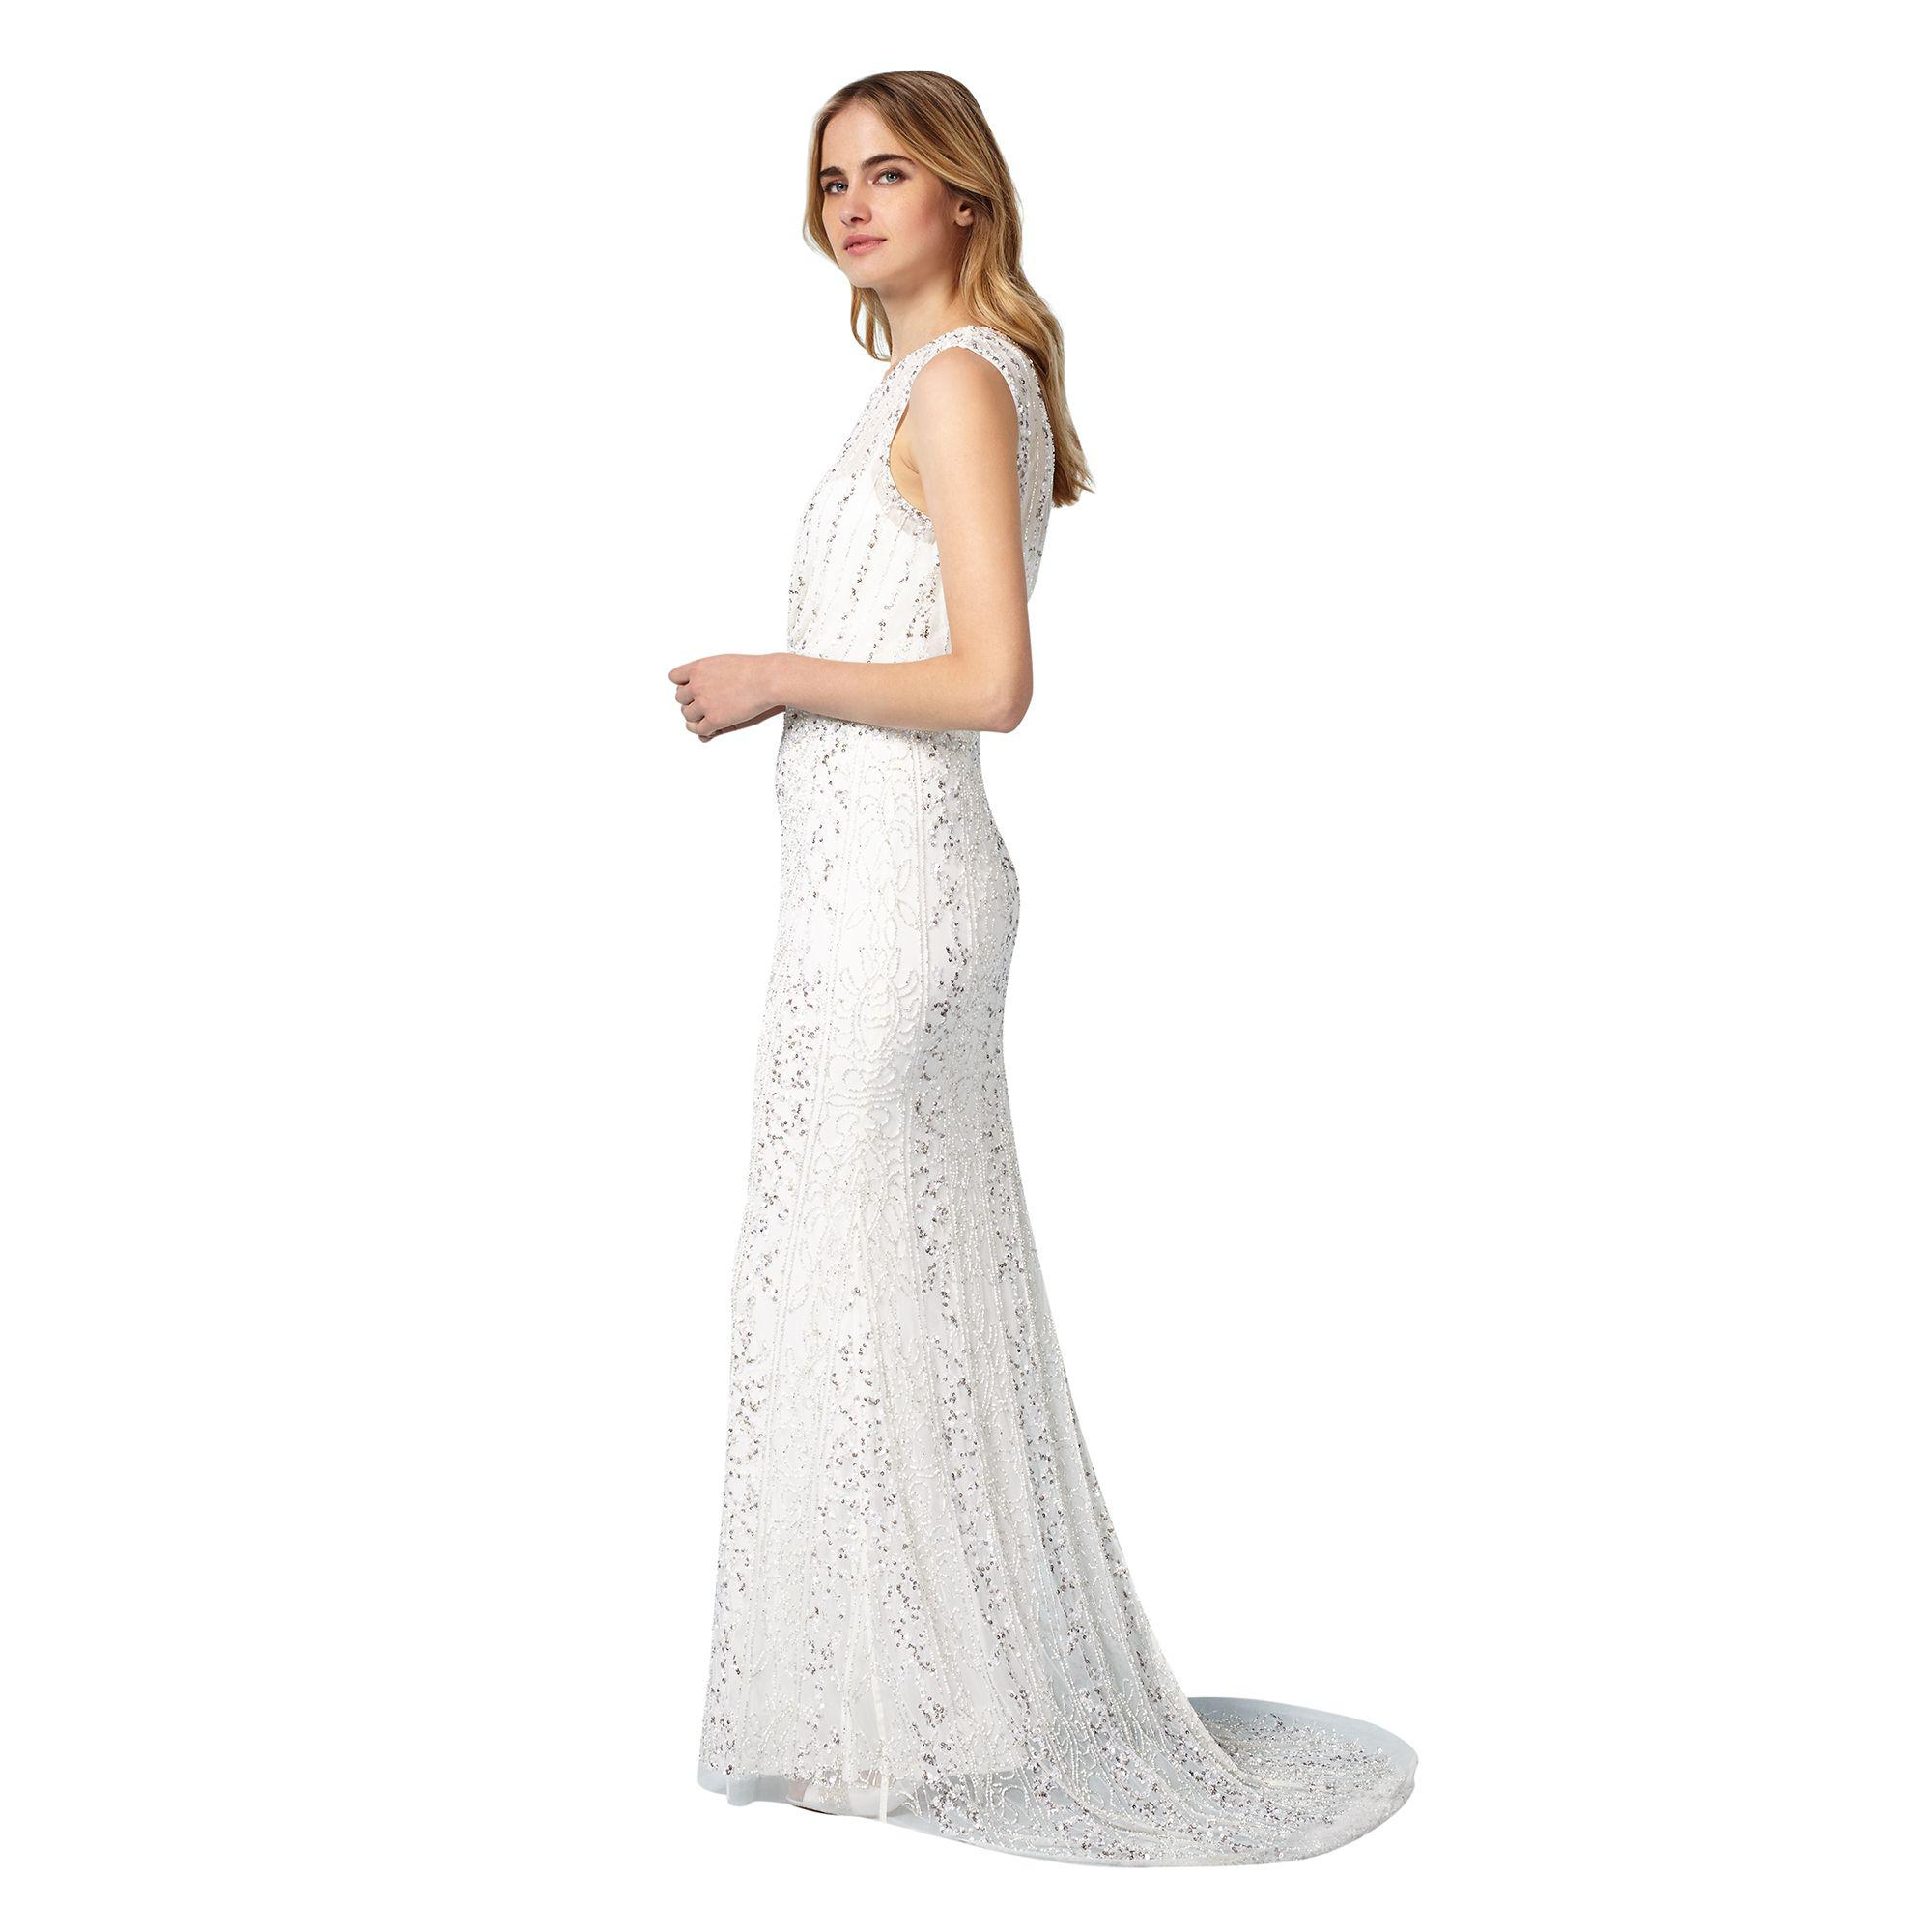 Phase Eight Ivory Hope Wedding Dress in White - Lyst